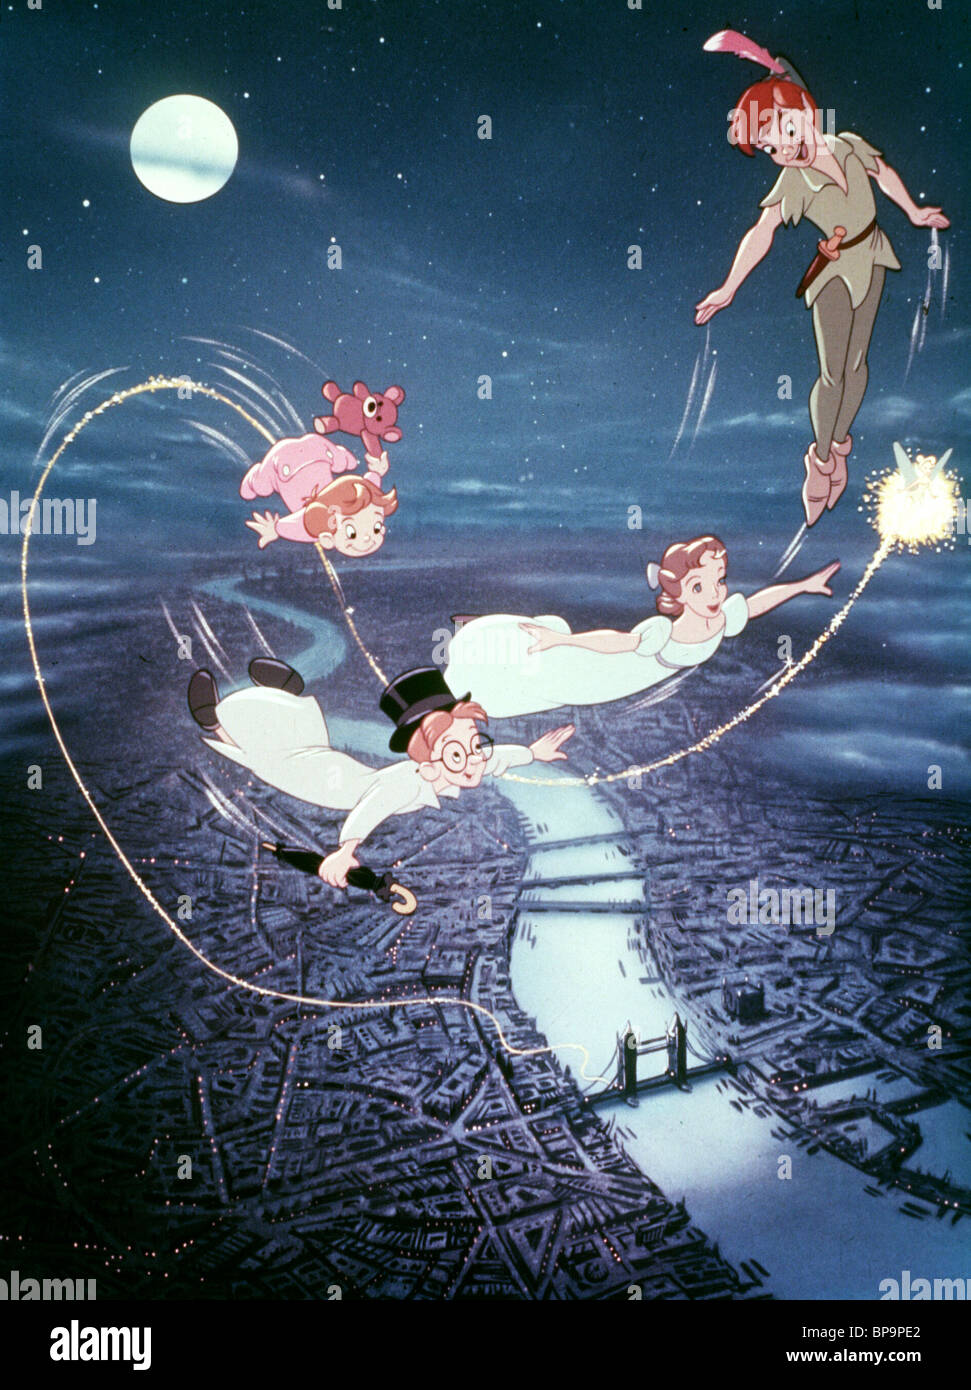 JOHN MICHAEL WENDY PETER PAN TINKERBELL FLY OVER LONDON 1953